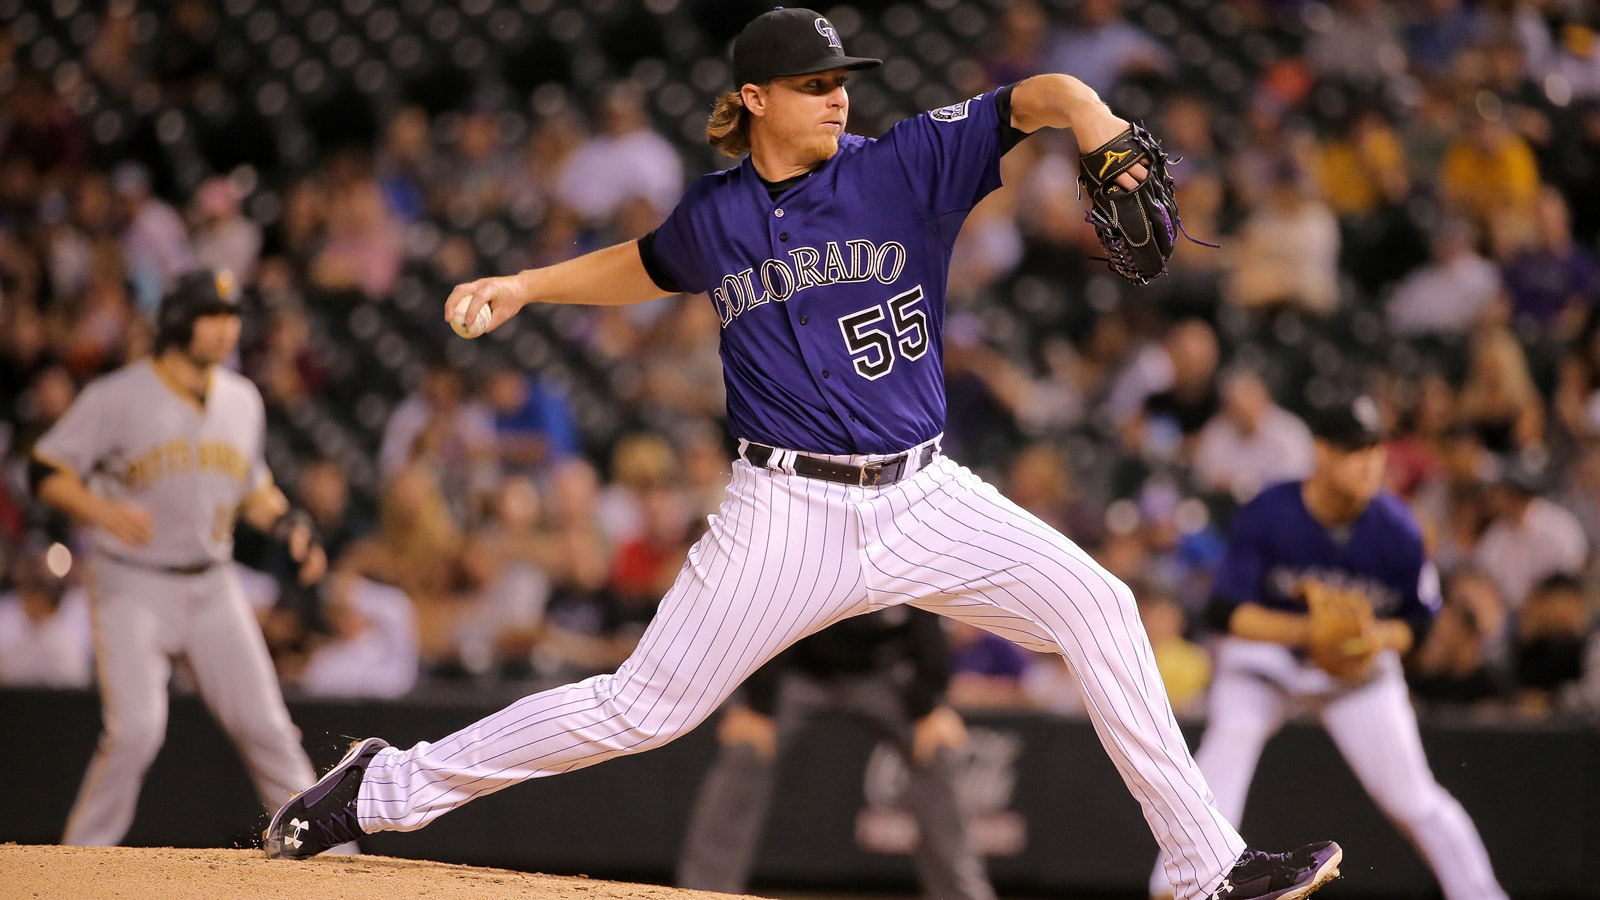 Jon Gray of the Colorado Rockies delivers against the Pittsburgh Pirates at Coors Field on Sept. 21, 2015. (Photo by Doug Pensinger/Getty Images)